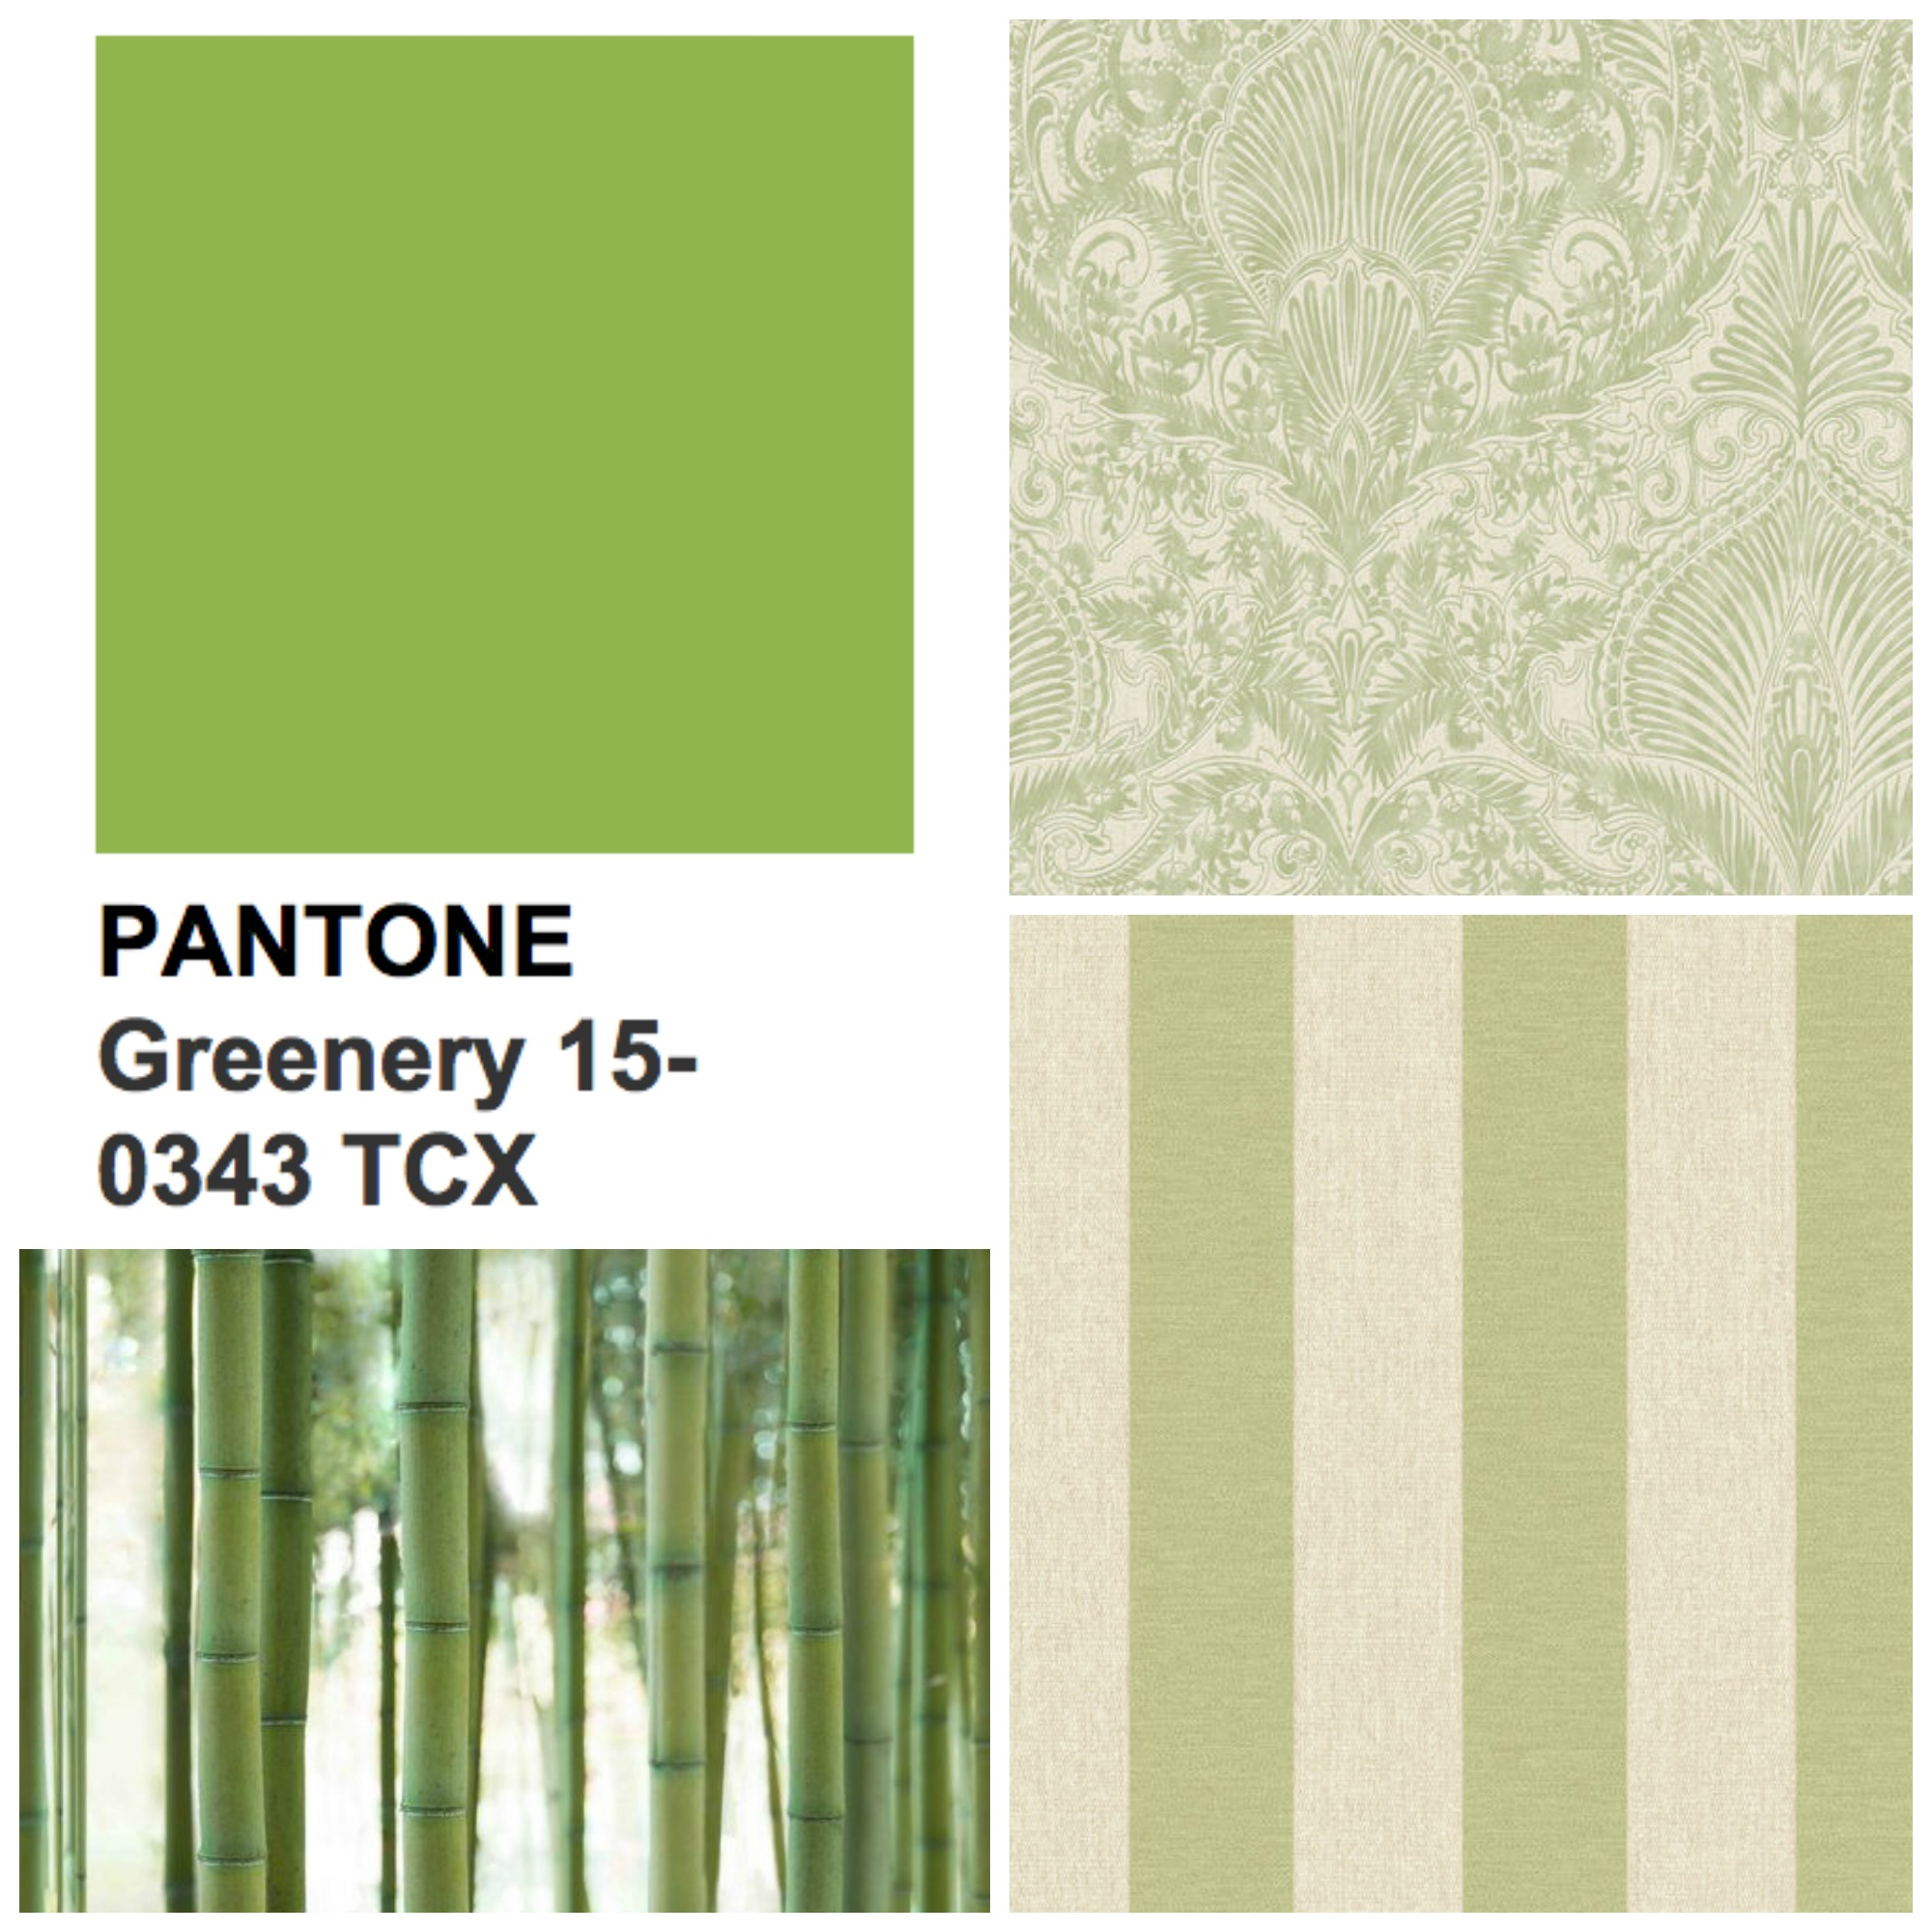 Our Green Wallpaper Collection Includes Botanical Inspired Prints Like Bambou Forest Styles As Well Adding A Zesty Twist On Classic